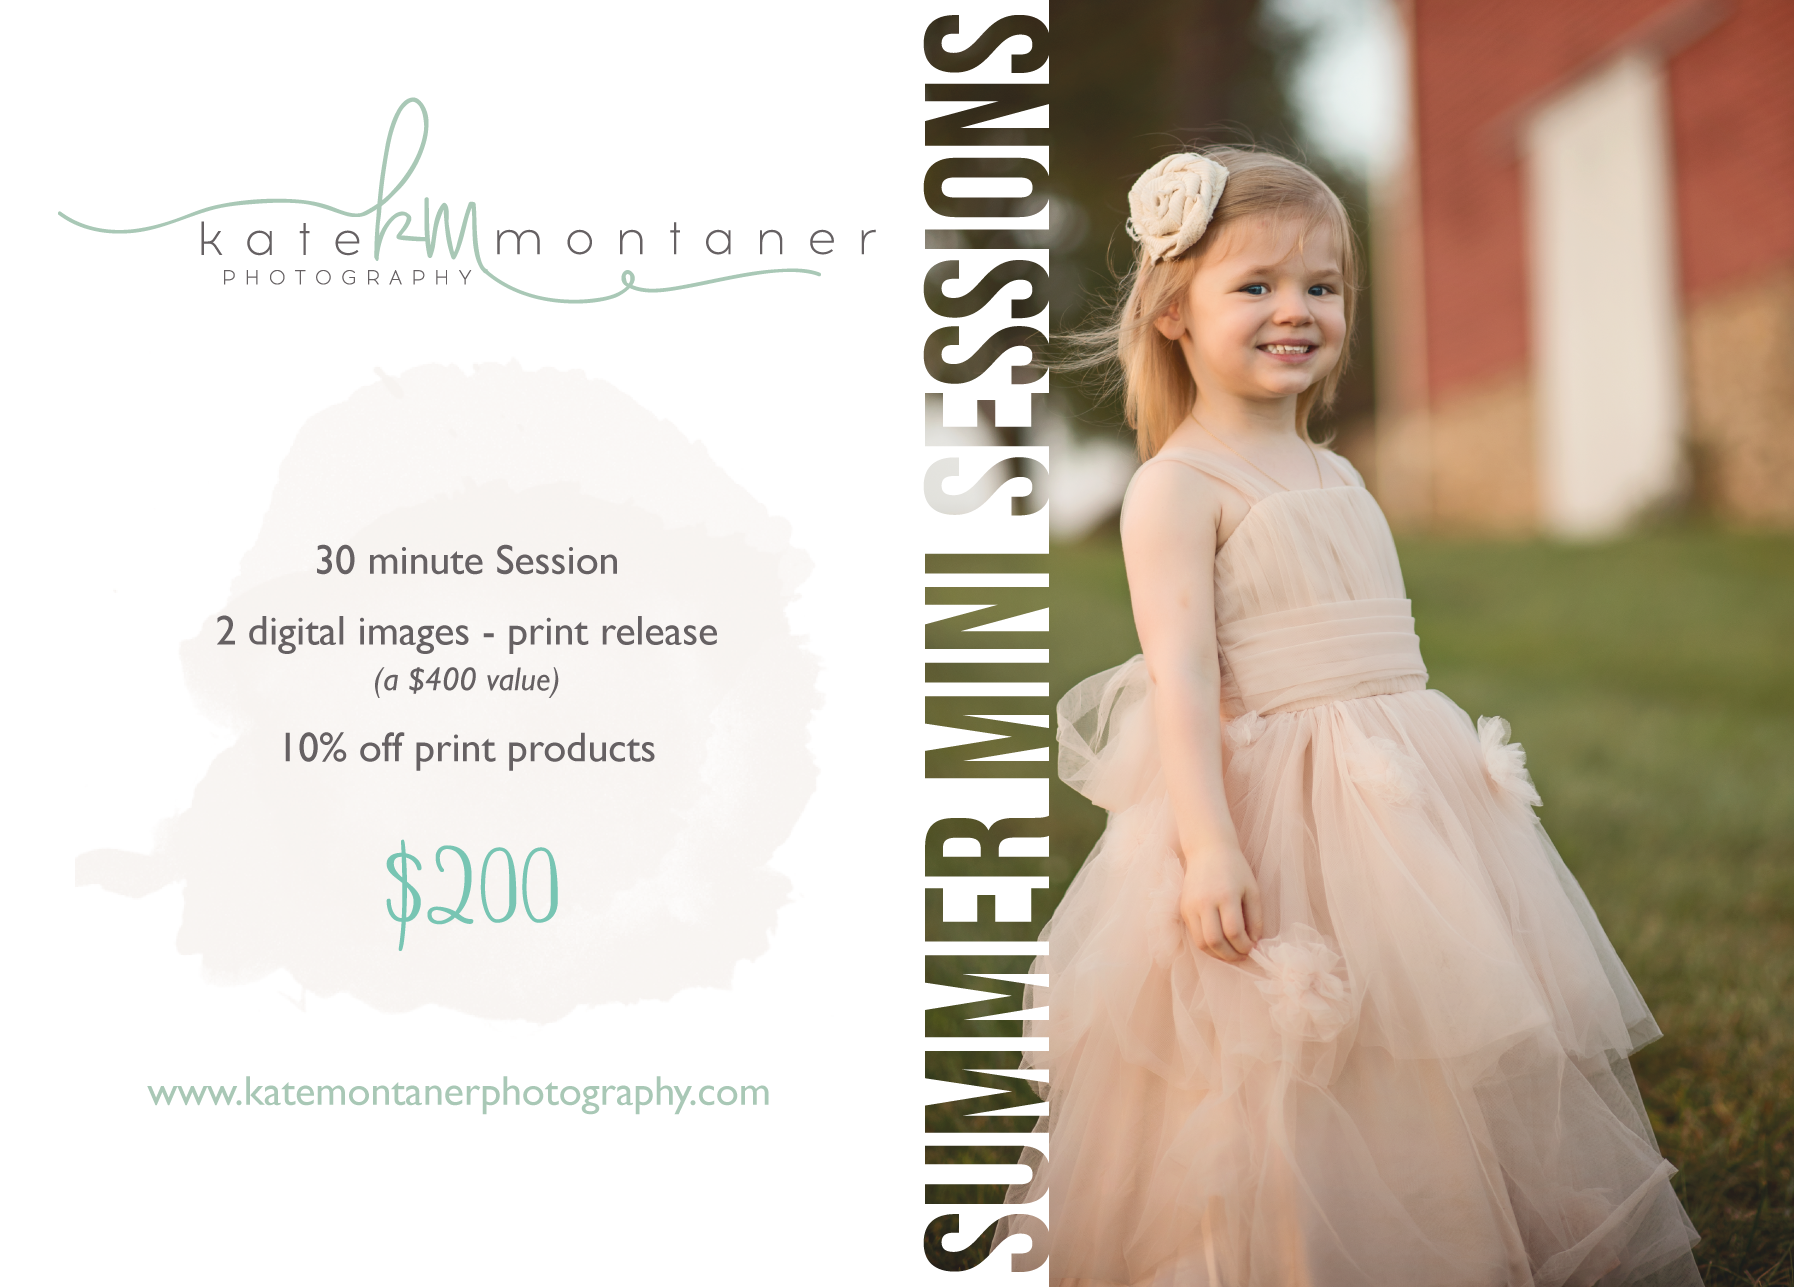 girl-with-blush-tuile-dress-standing-in-field-by-barn-Summer-Portrait-Kate-Montaner-Photography-childrens-Portaiture